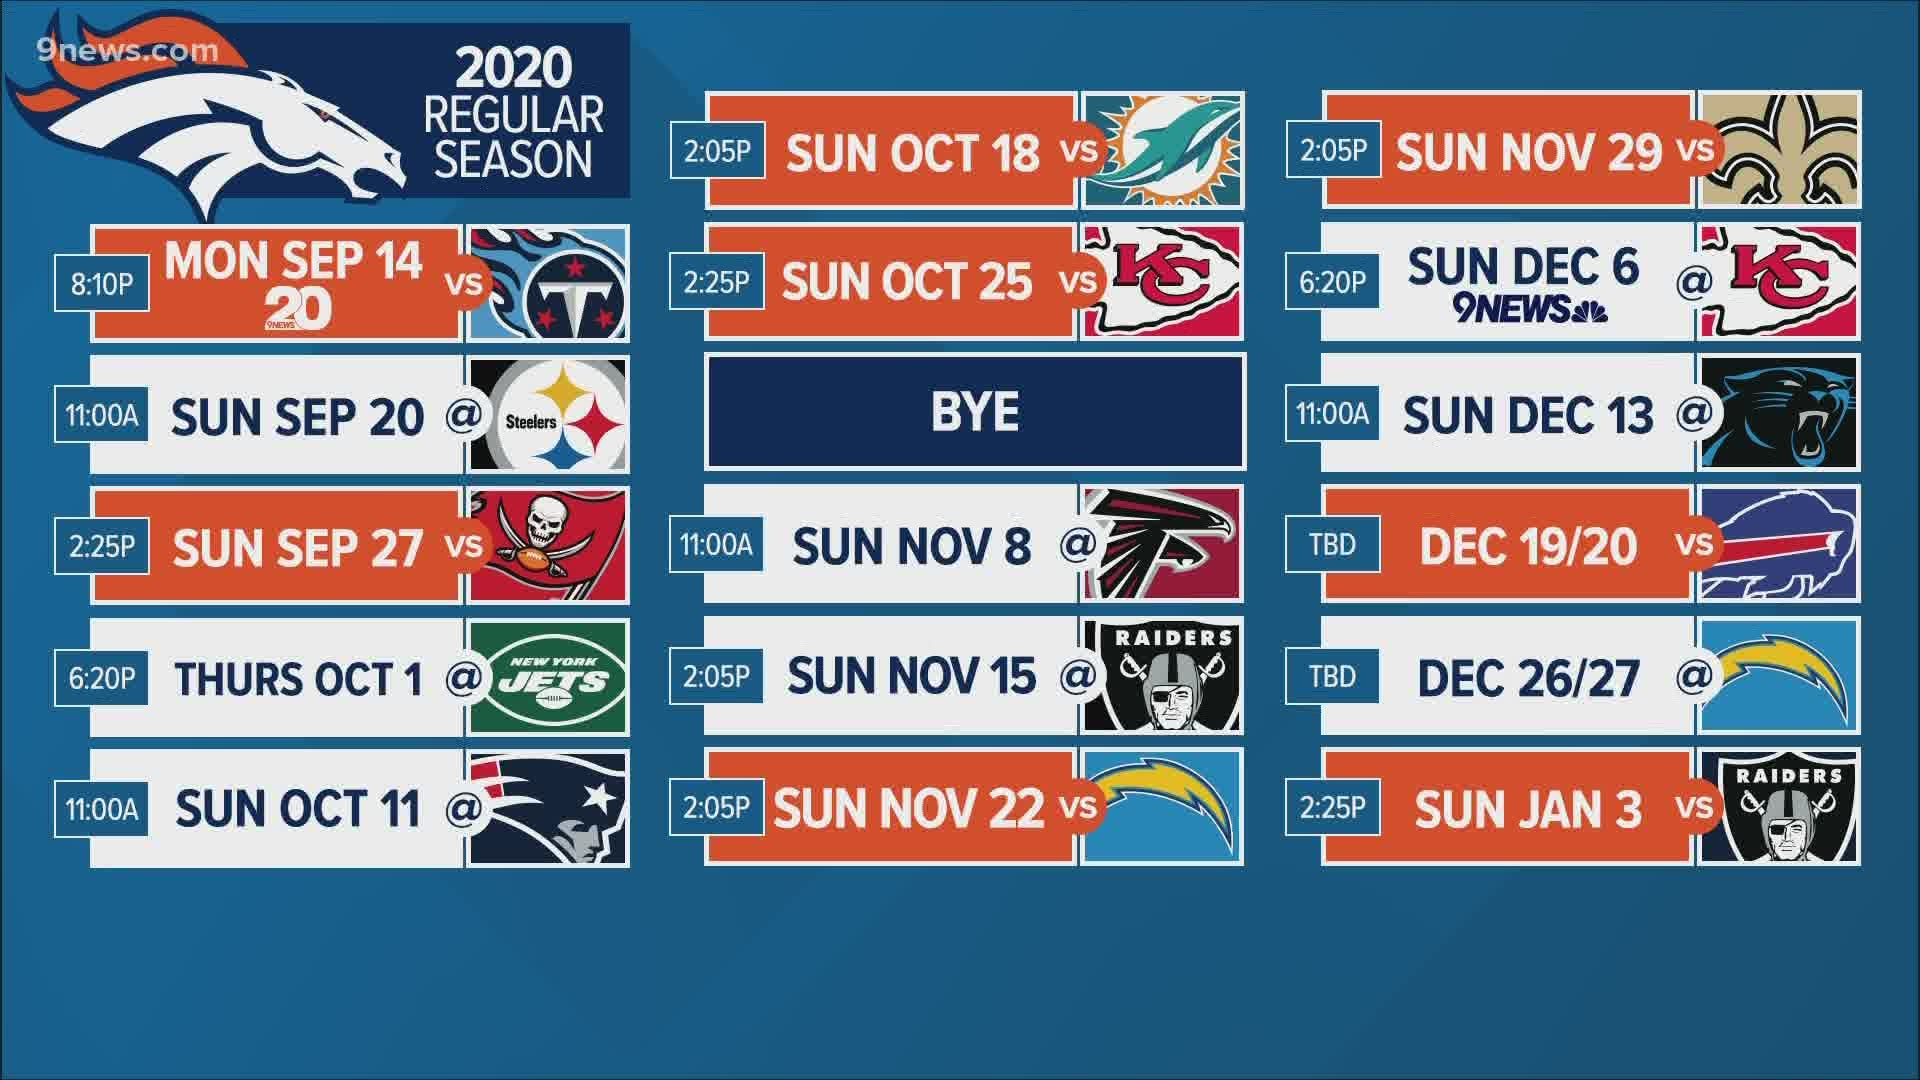 Mike Klis Breaks Down 2020 Broncos Schedule with Printable 2020 Full Nfl Schedule